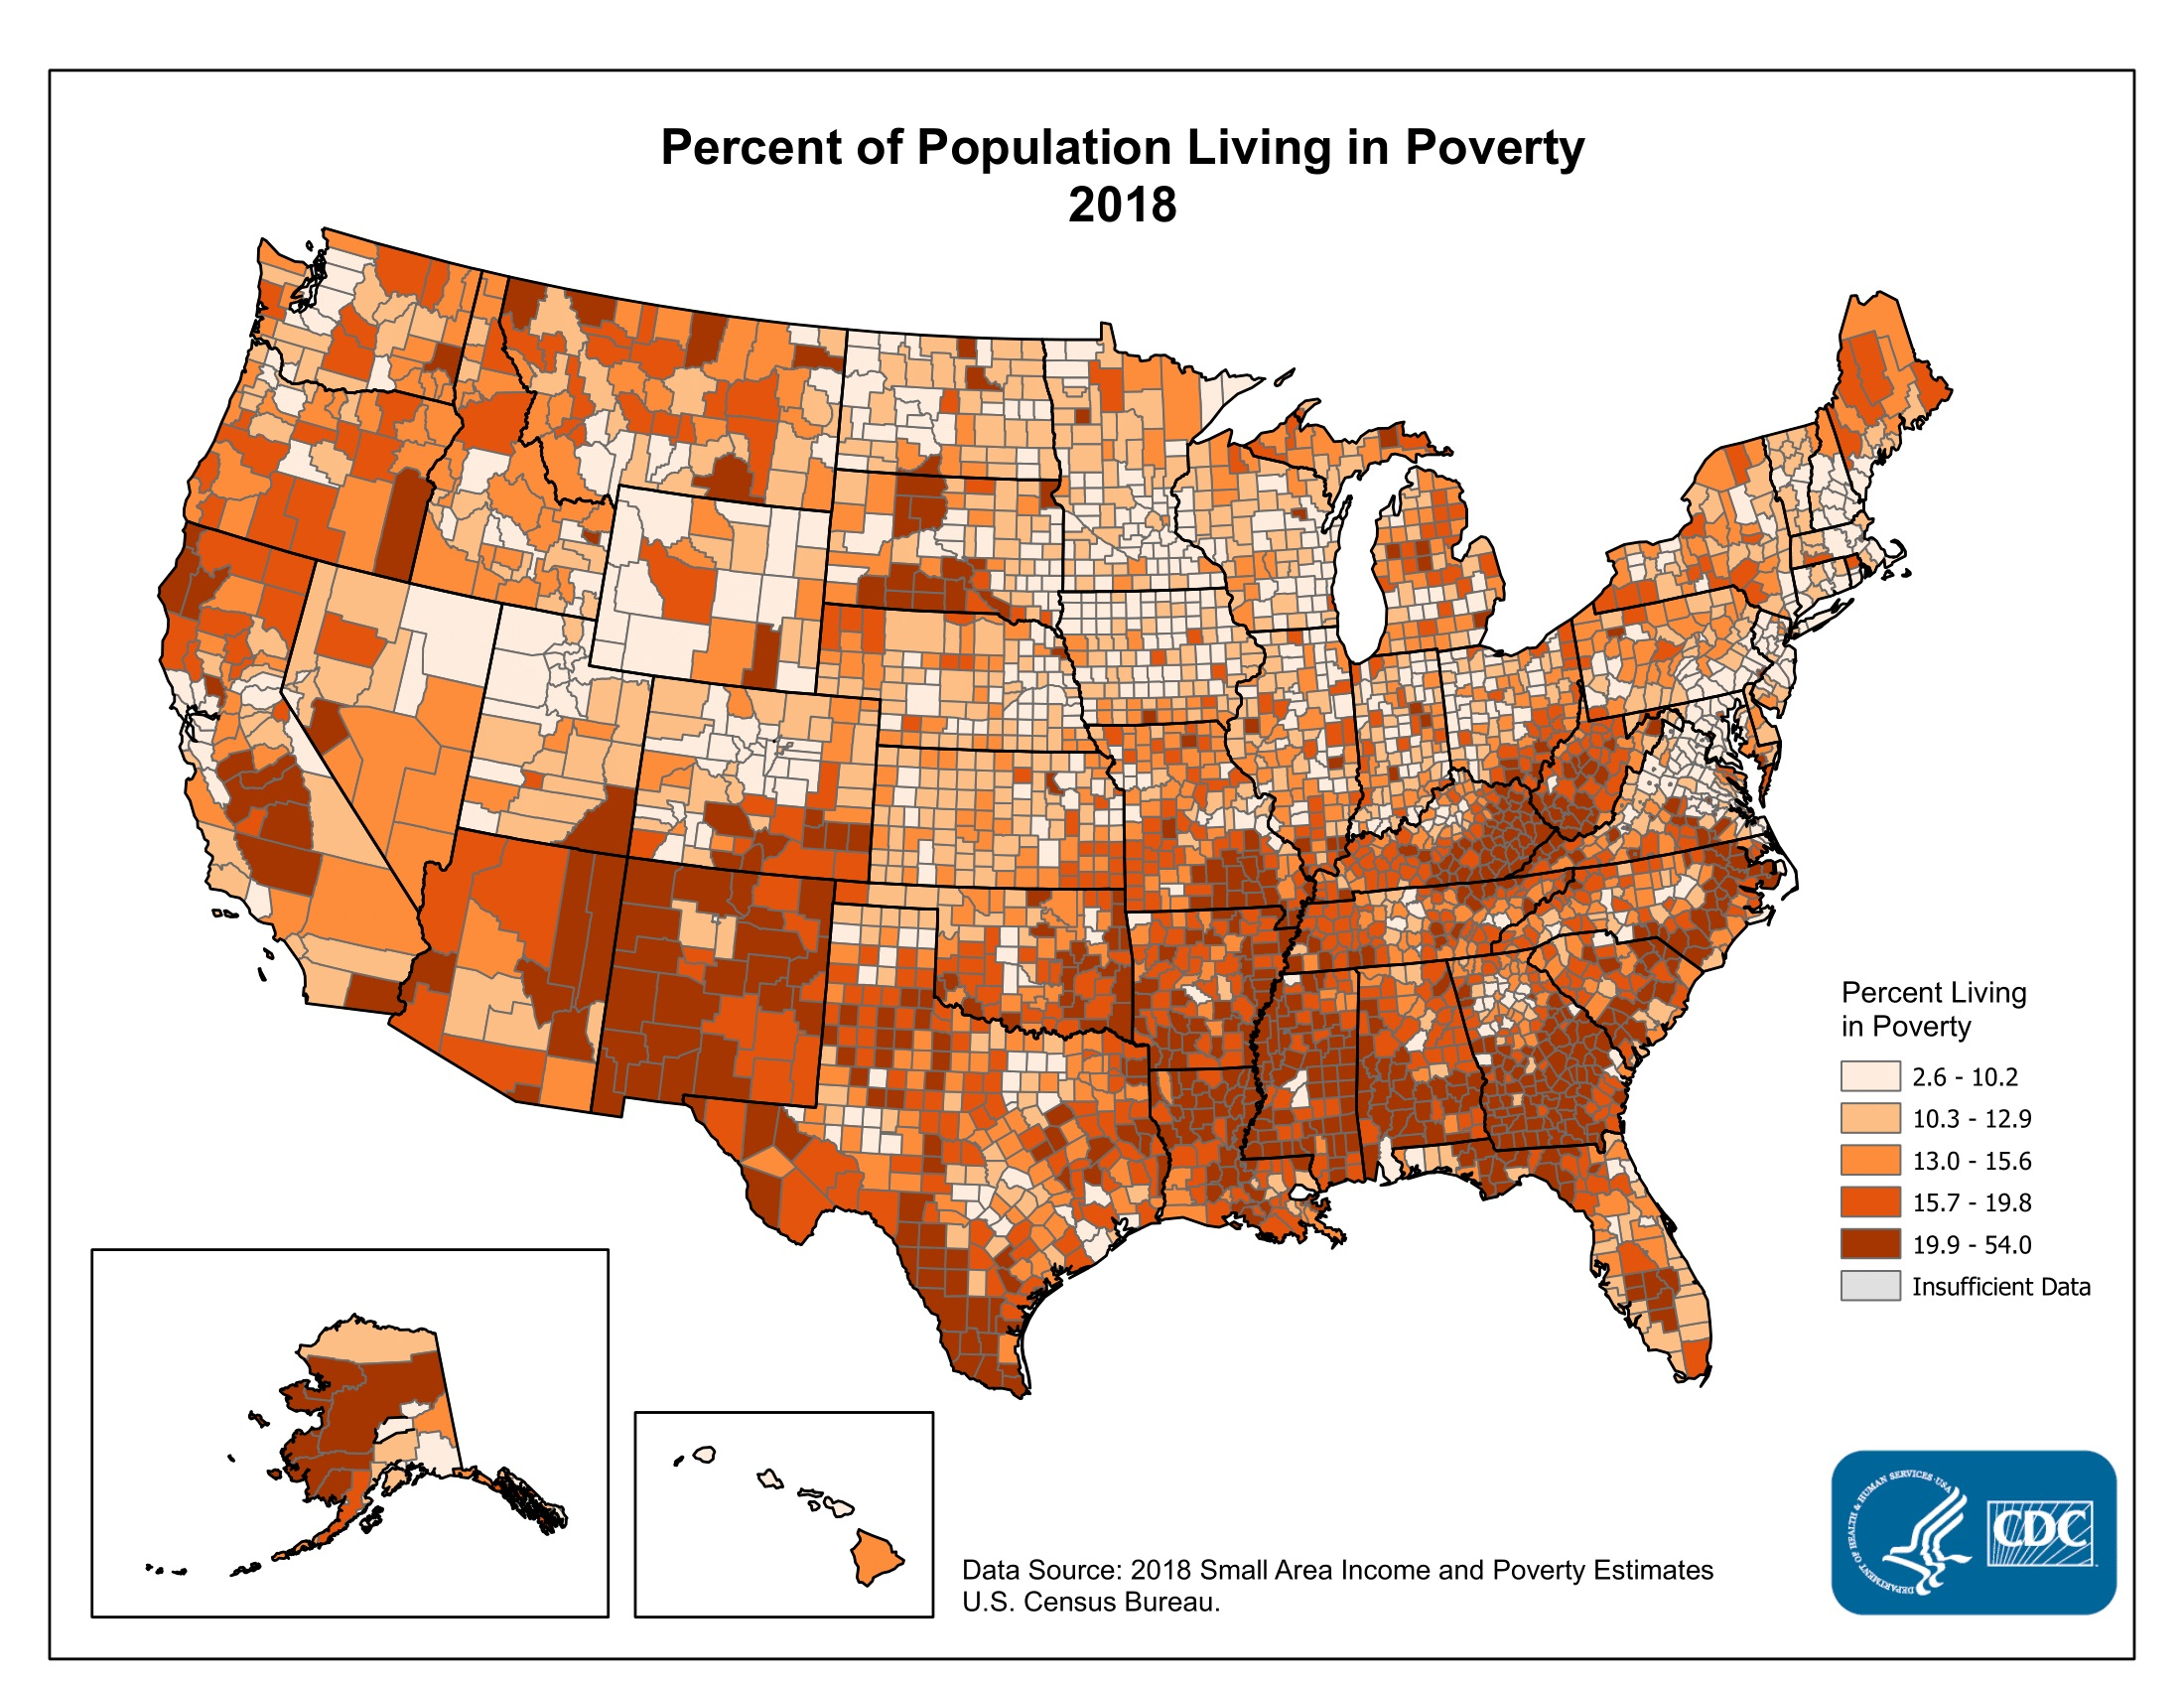 https://www.cdc.gov/dhdsp/maps/sd_poverty.htm